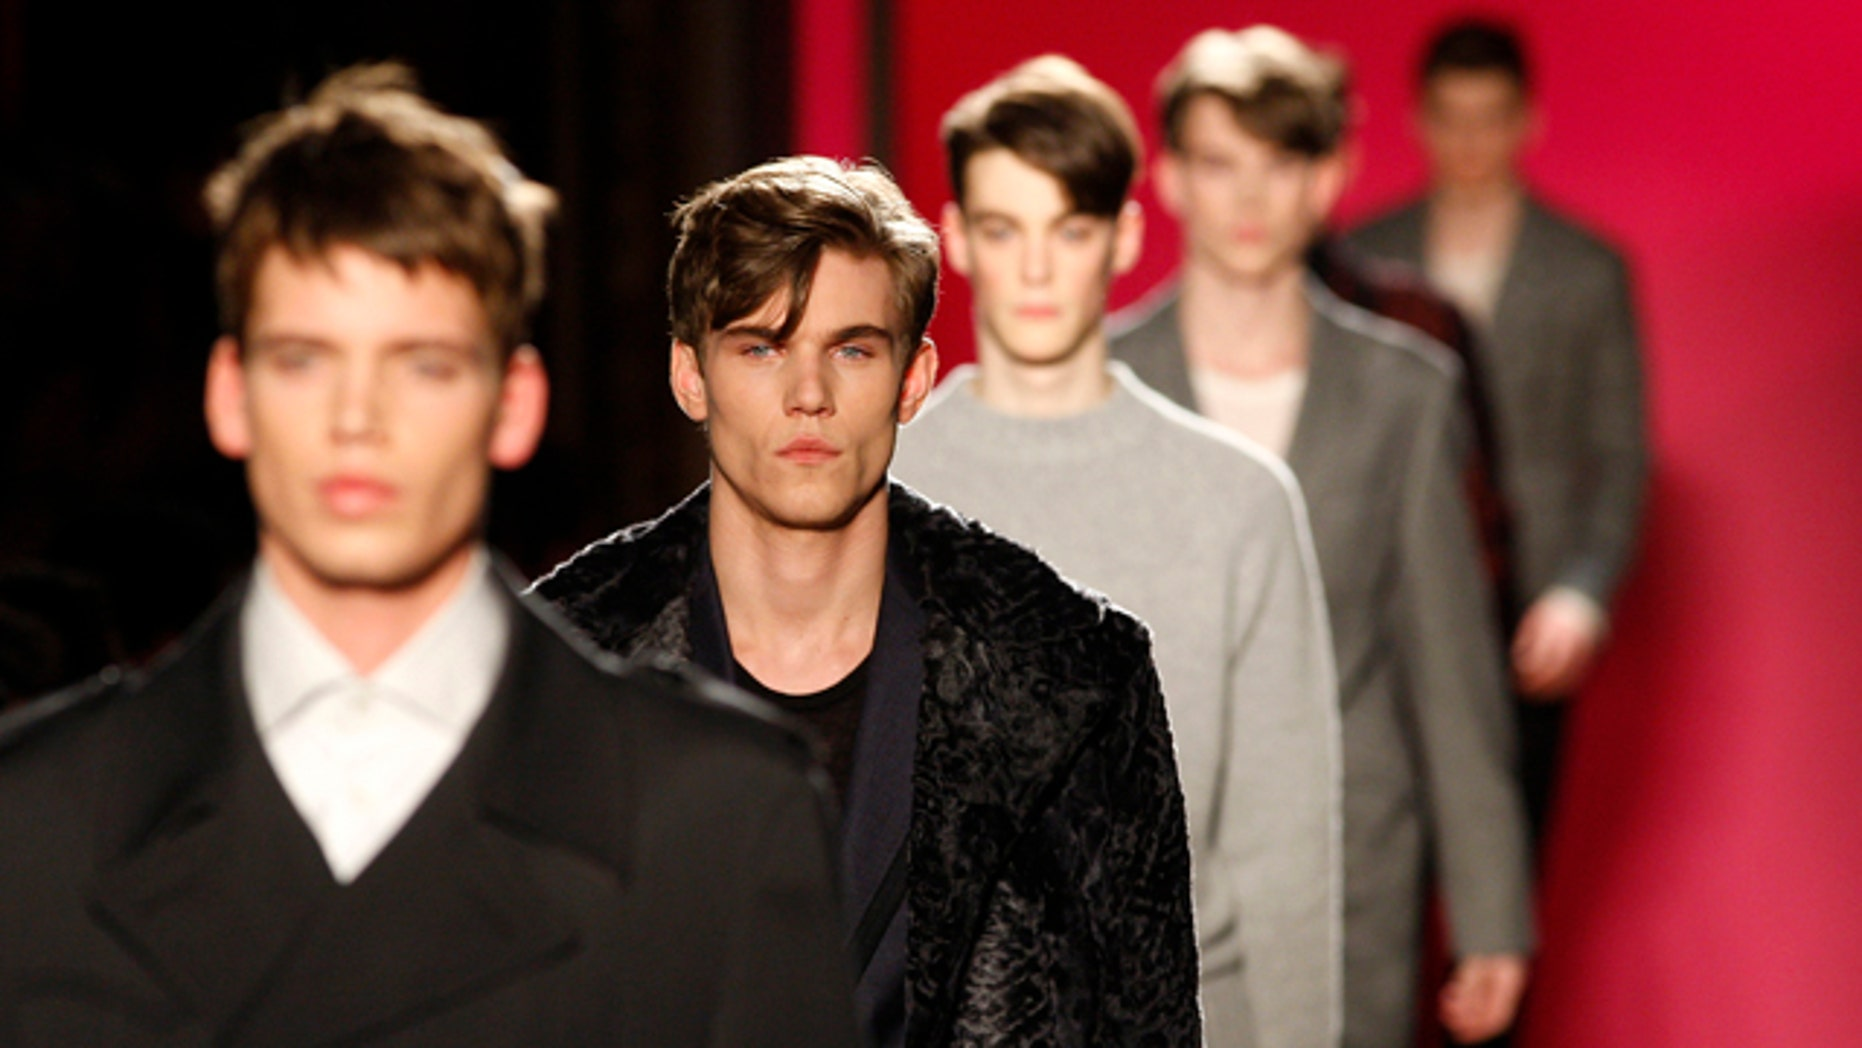 Models display creations by French designer Franck Boclet for fashion house Emanuel Ungaro as part of his Fall/Winter 2009/10 men's collections during Paris Fashion Week January 24, 2009.